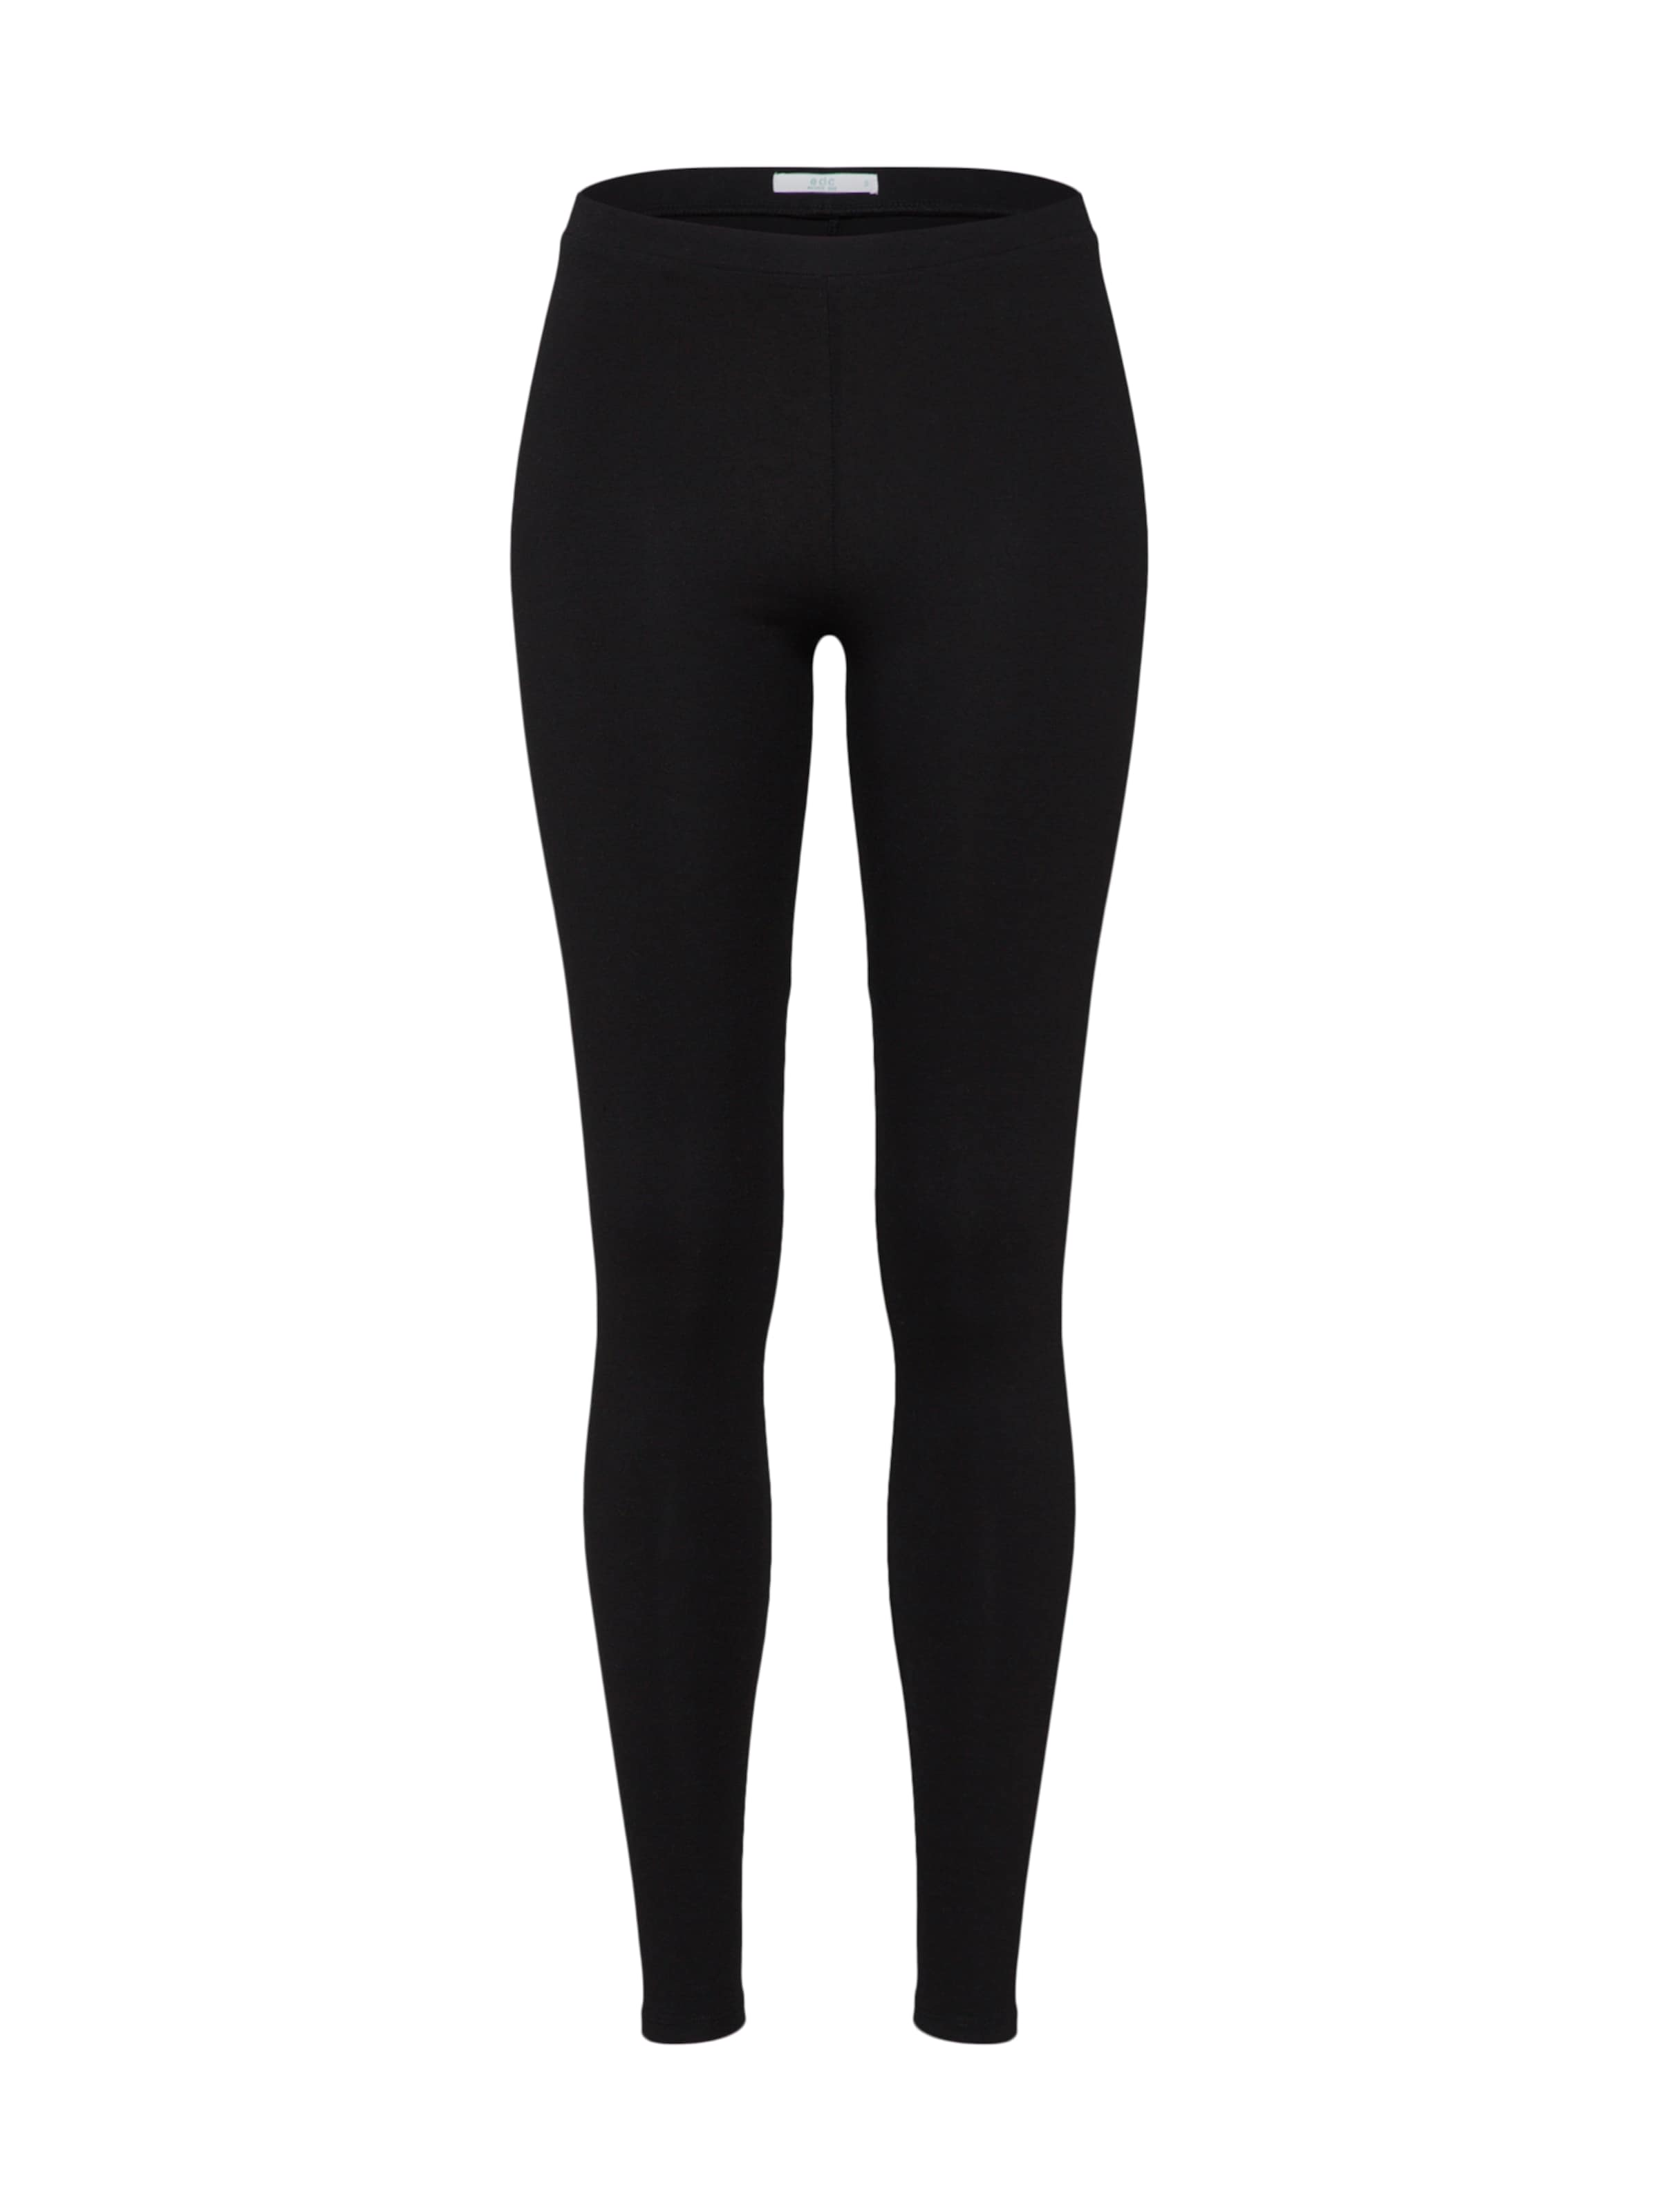 By Leggings Noir Edc En Esprit kuOPXZi